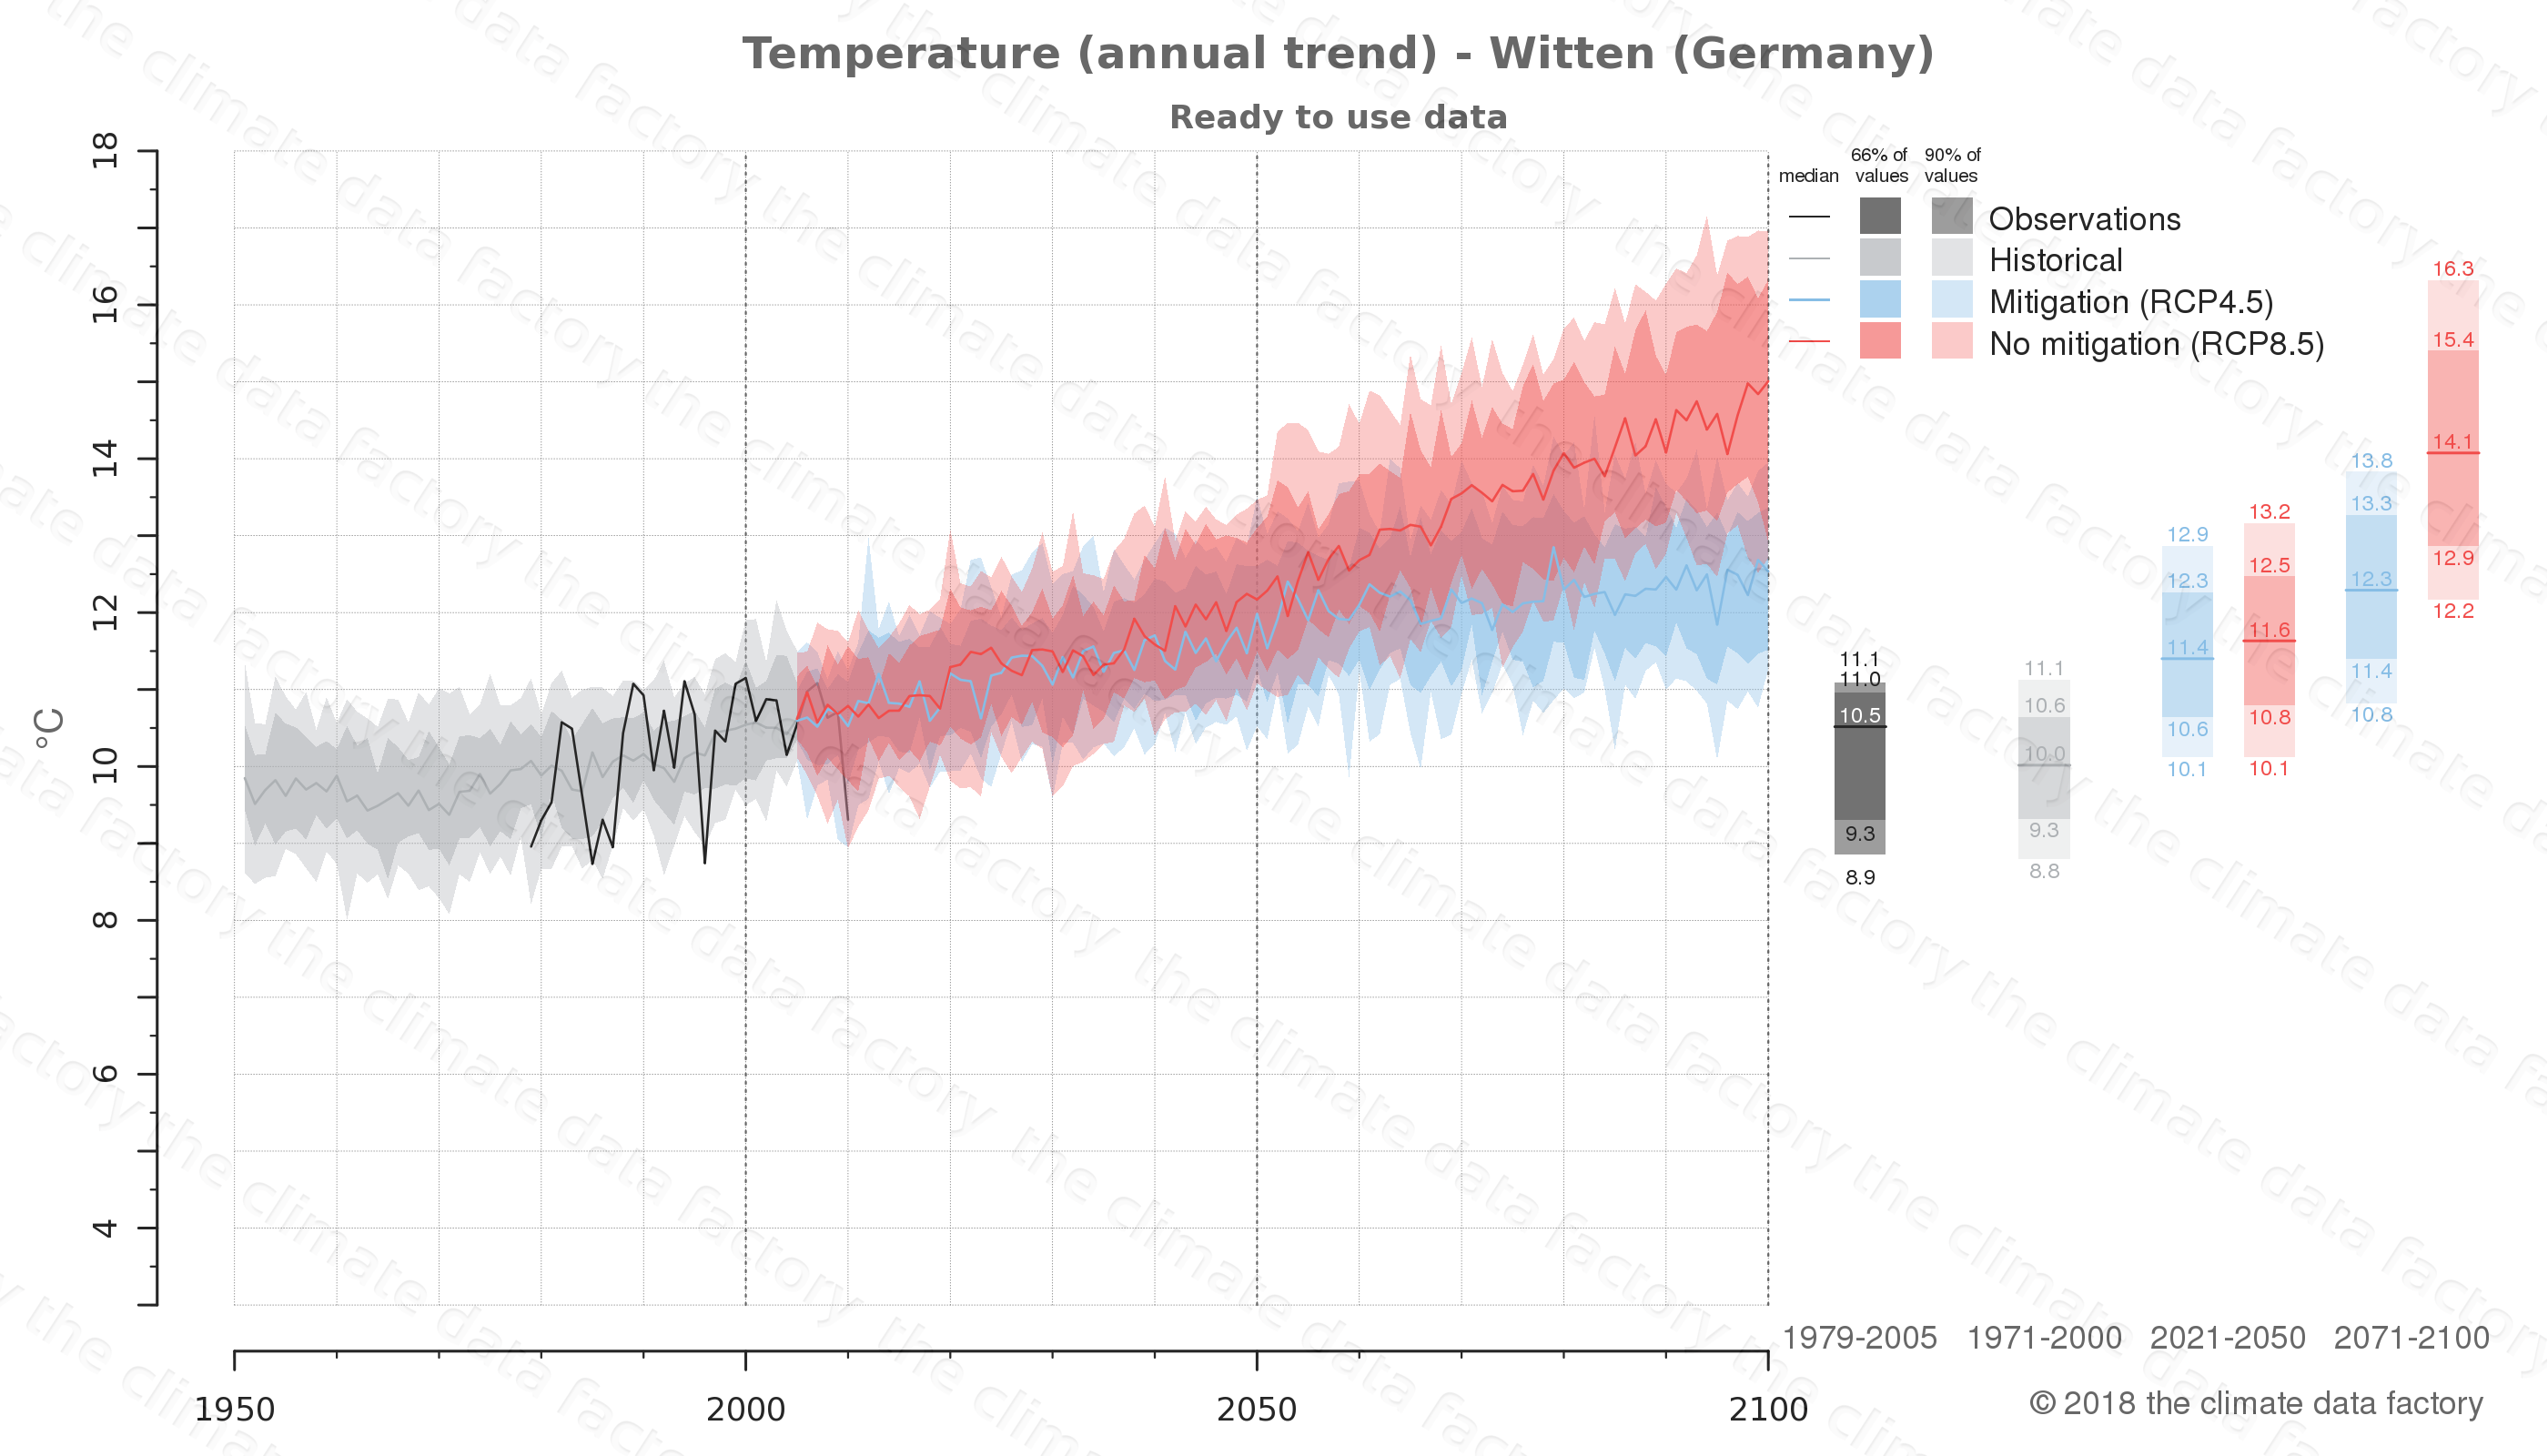 climate change data policy adaptation climate graph city data temperature witten germany